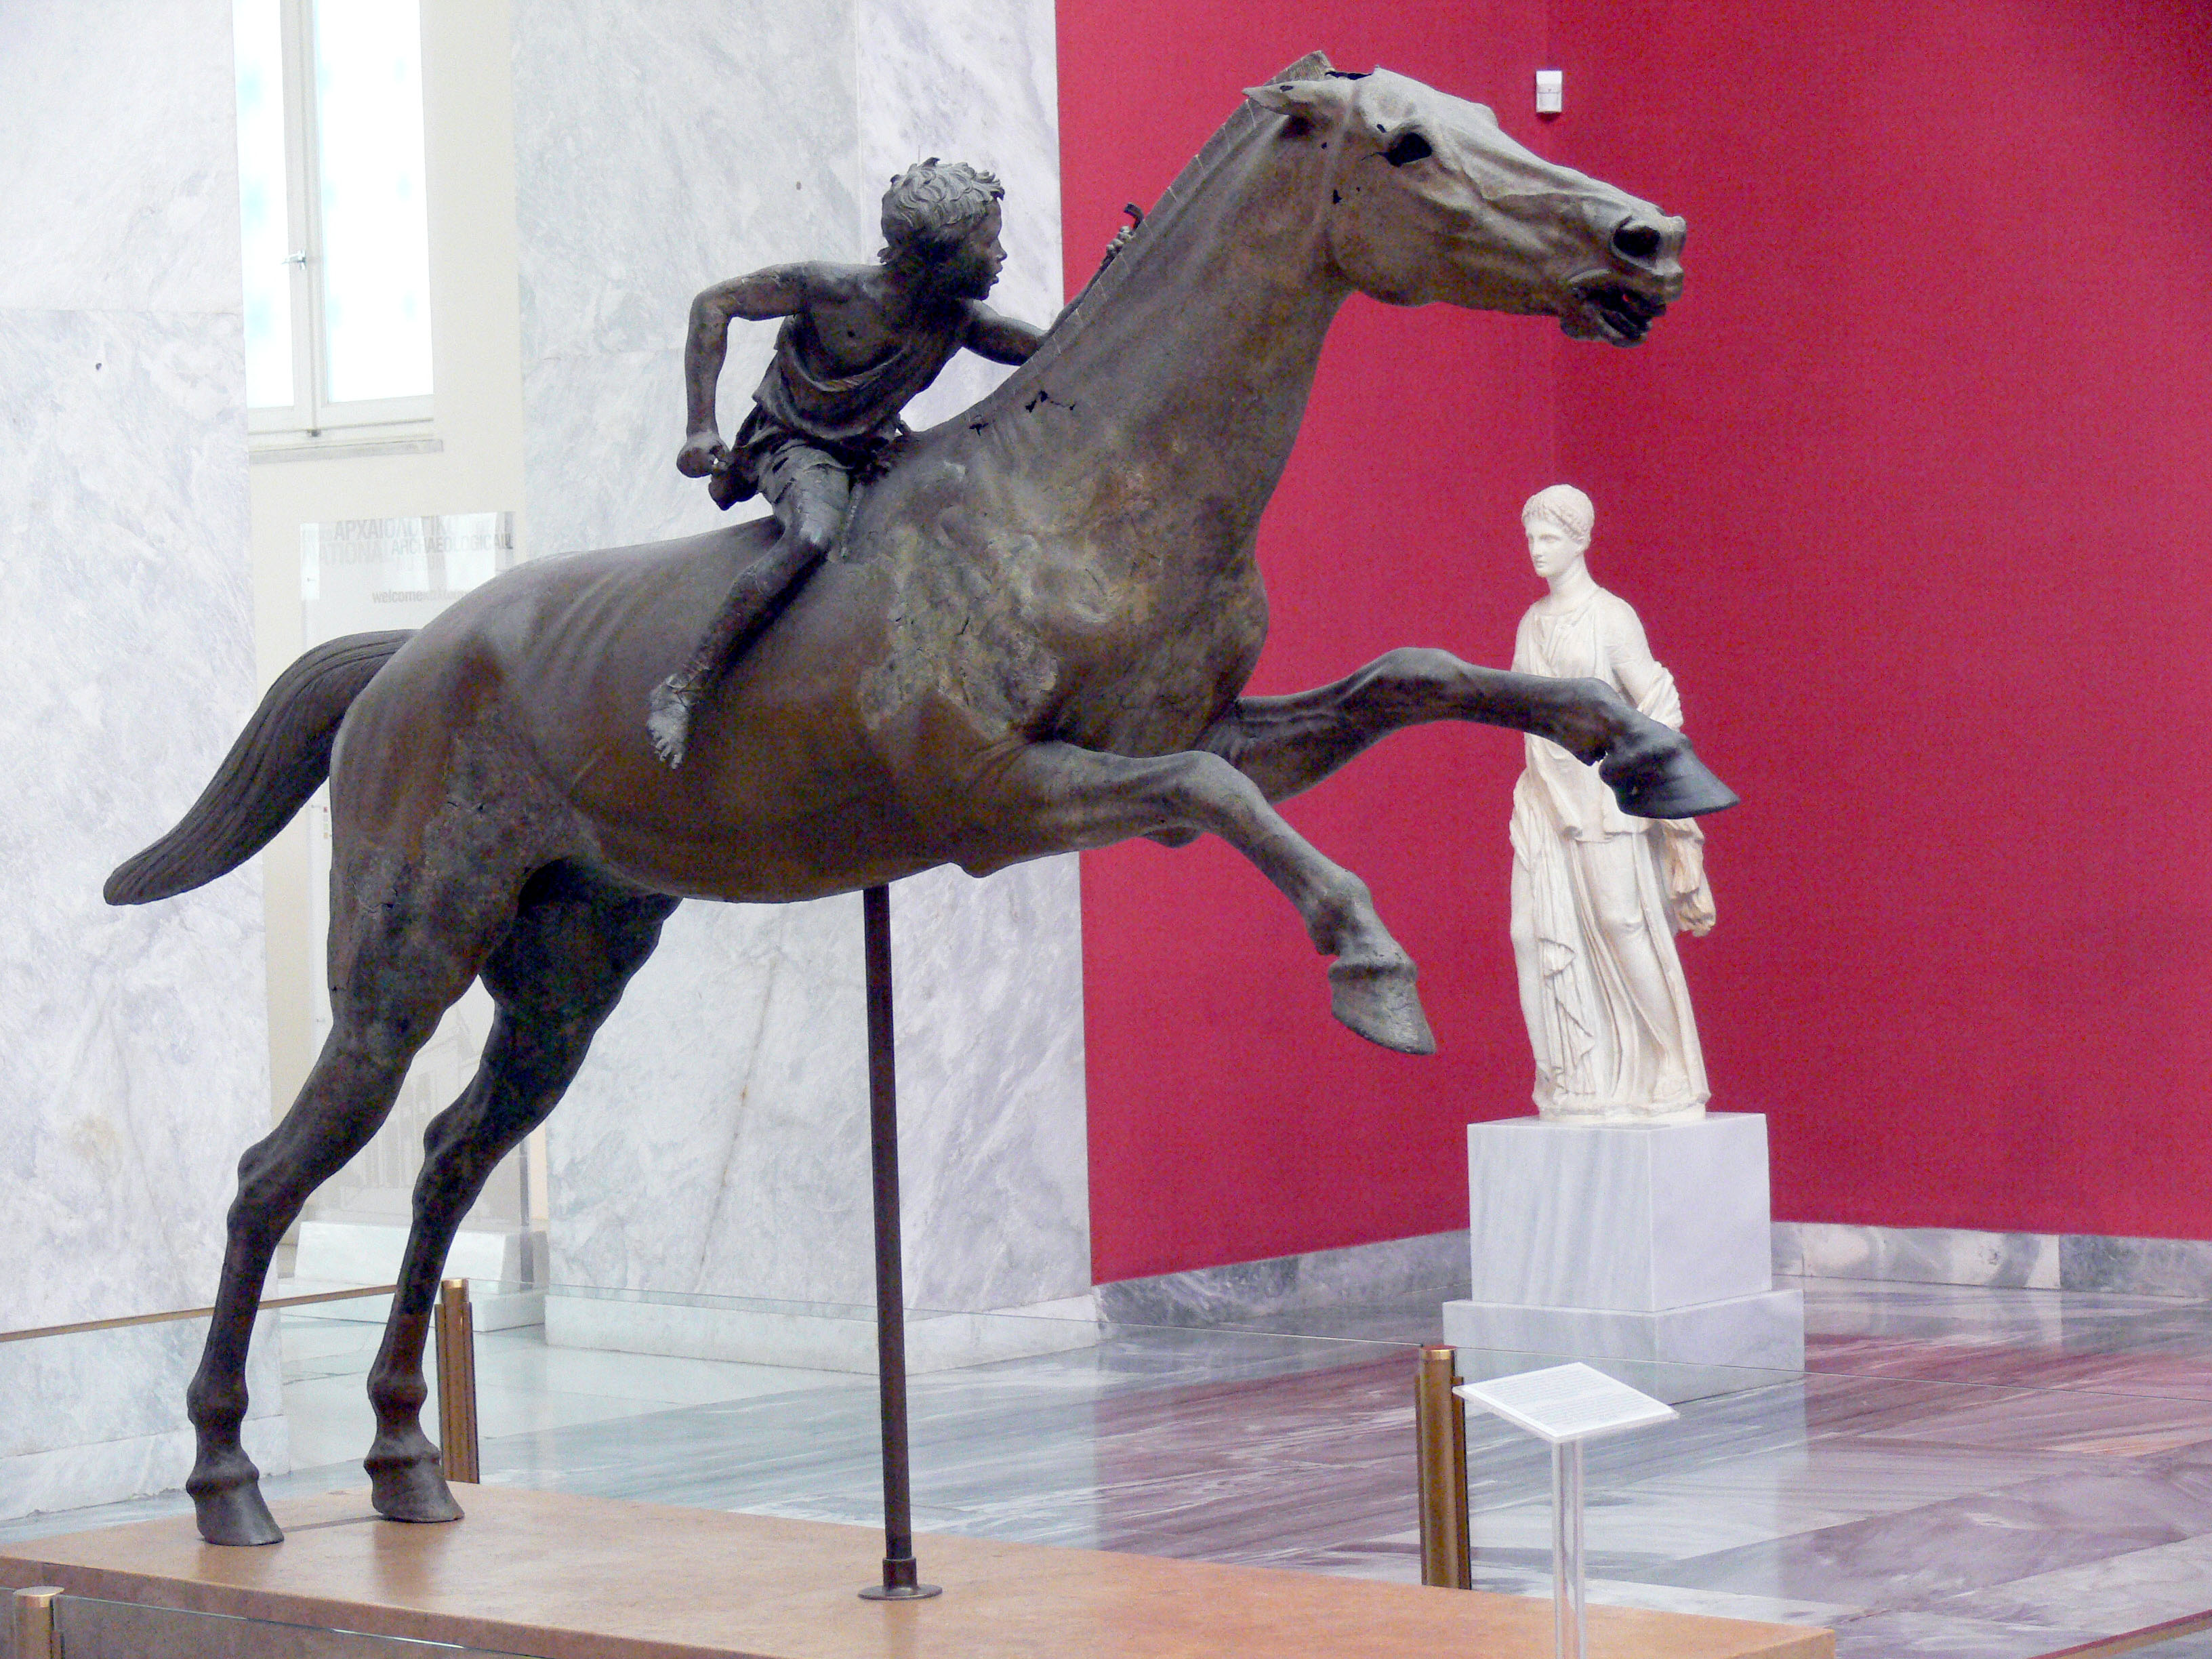 "ca. 150–140 v. Chr., Bronze, 290 cm x 210 cm, Athen, Archäologisches Nationalmuseum, Inv.-Nr. X 15177.<br>Quelle: <a href=""https://commons.wikimedia.org/wiki/File:07Jockey01.jpg